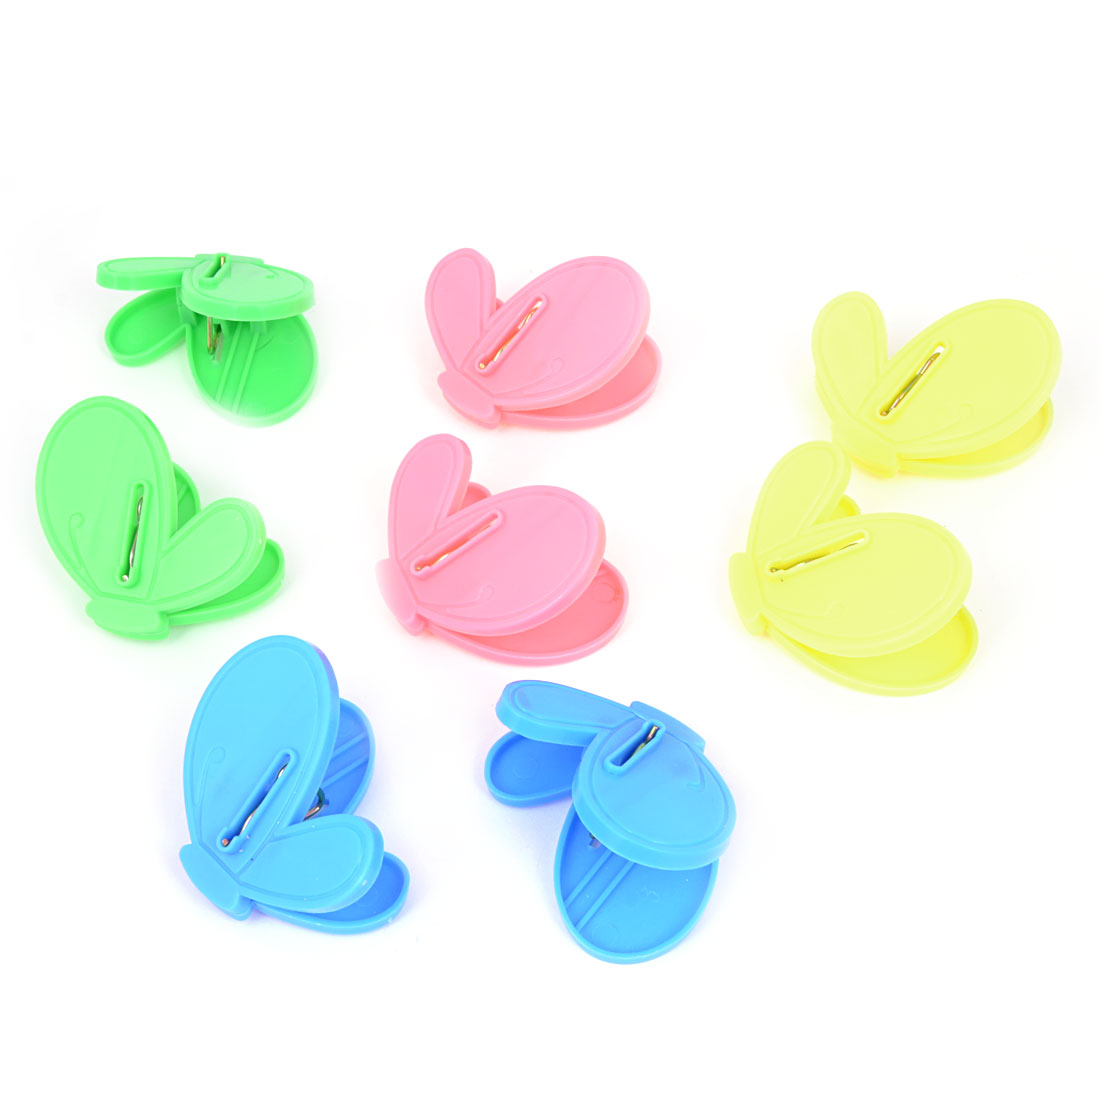 Multicolor Plastic Butterfly Shaped Clothespins Socks Clips Pegs 8 Pcs